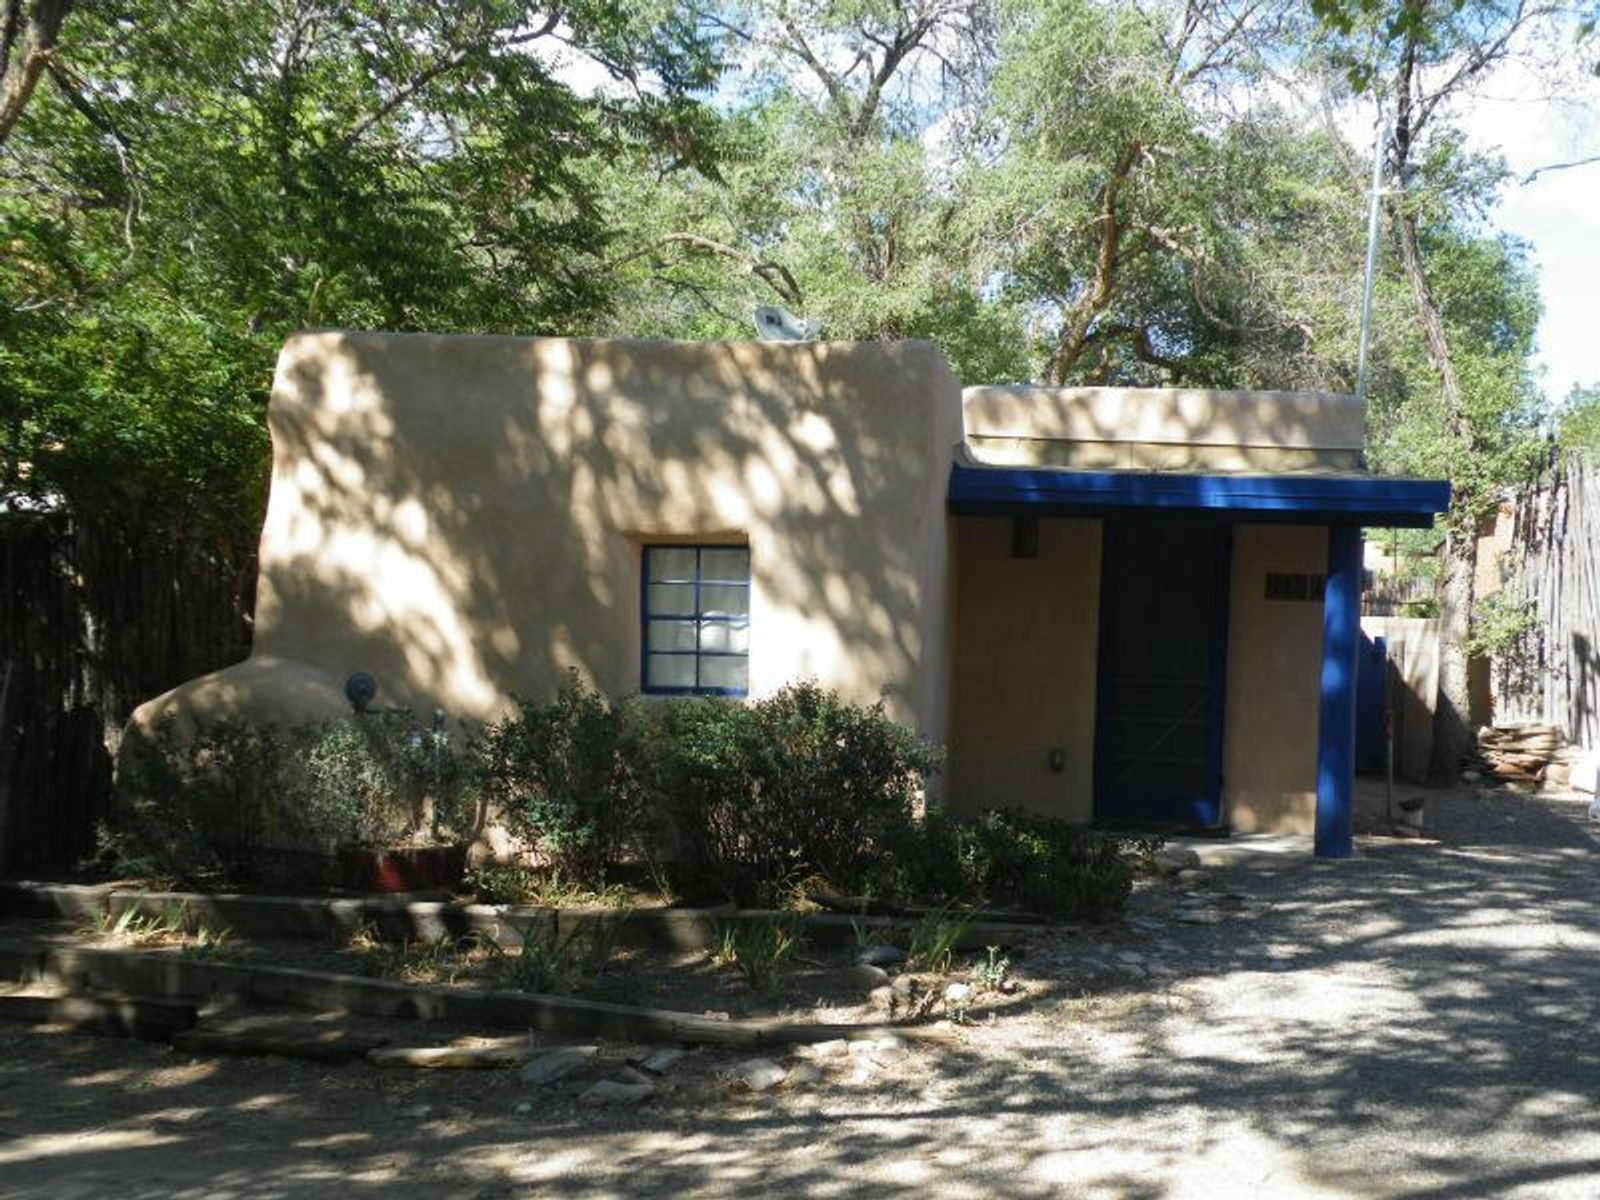 918-A Acequia Madre